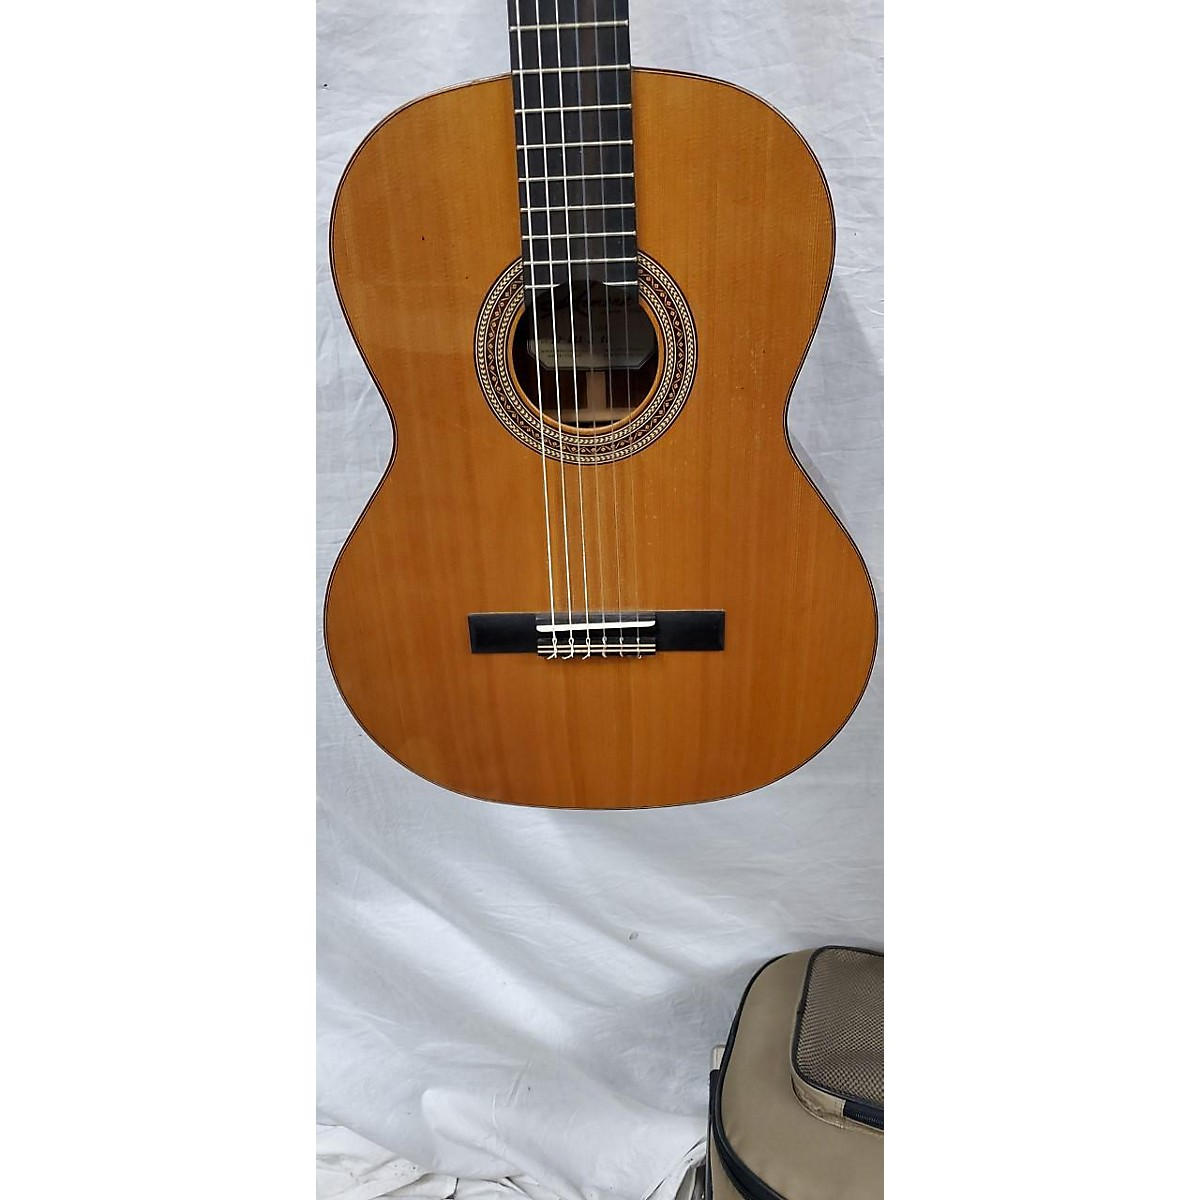 In Store Used Used Krenona Solea Natural Classical Acoustic Guitar